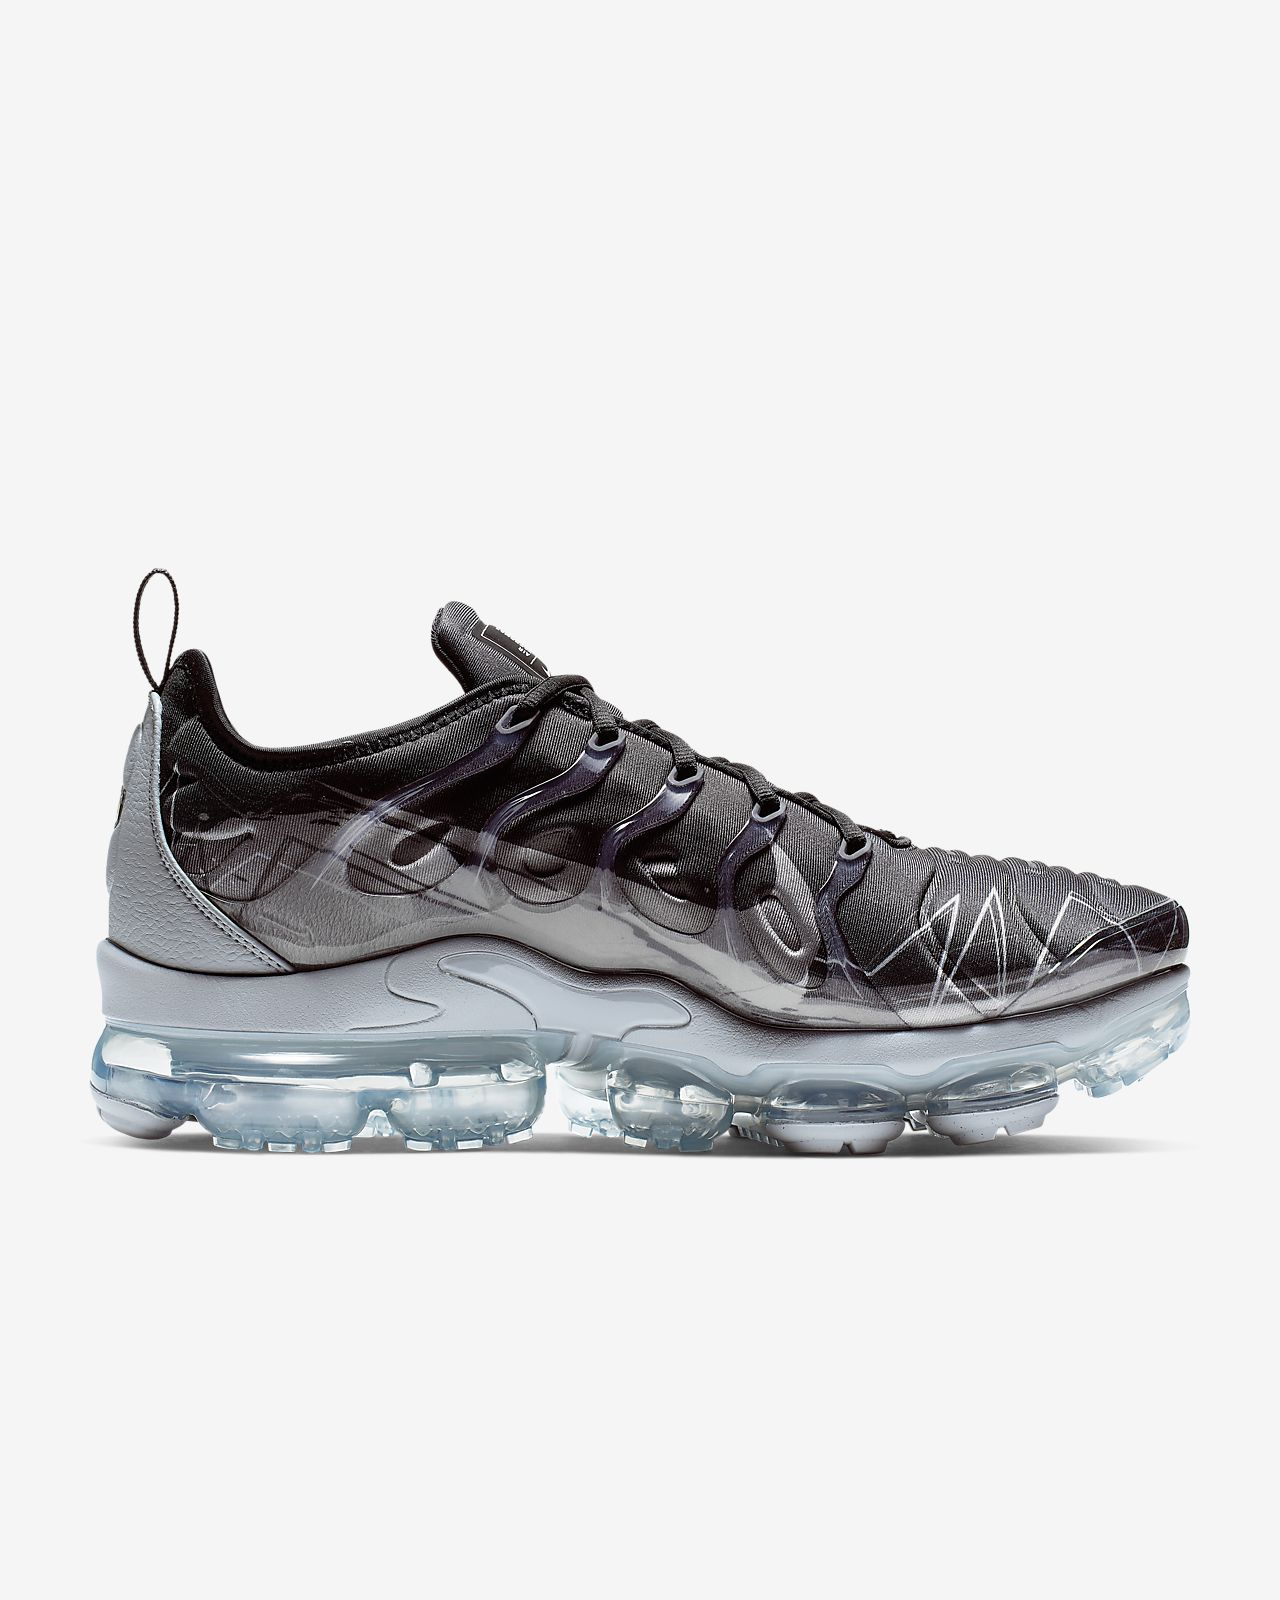 finest selection c5fc3 f576e ... Calzado para hombre Nike Air VaporMax Plus